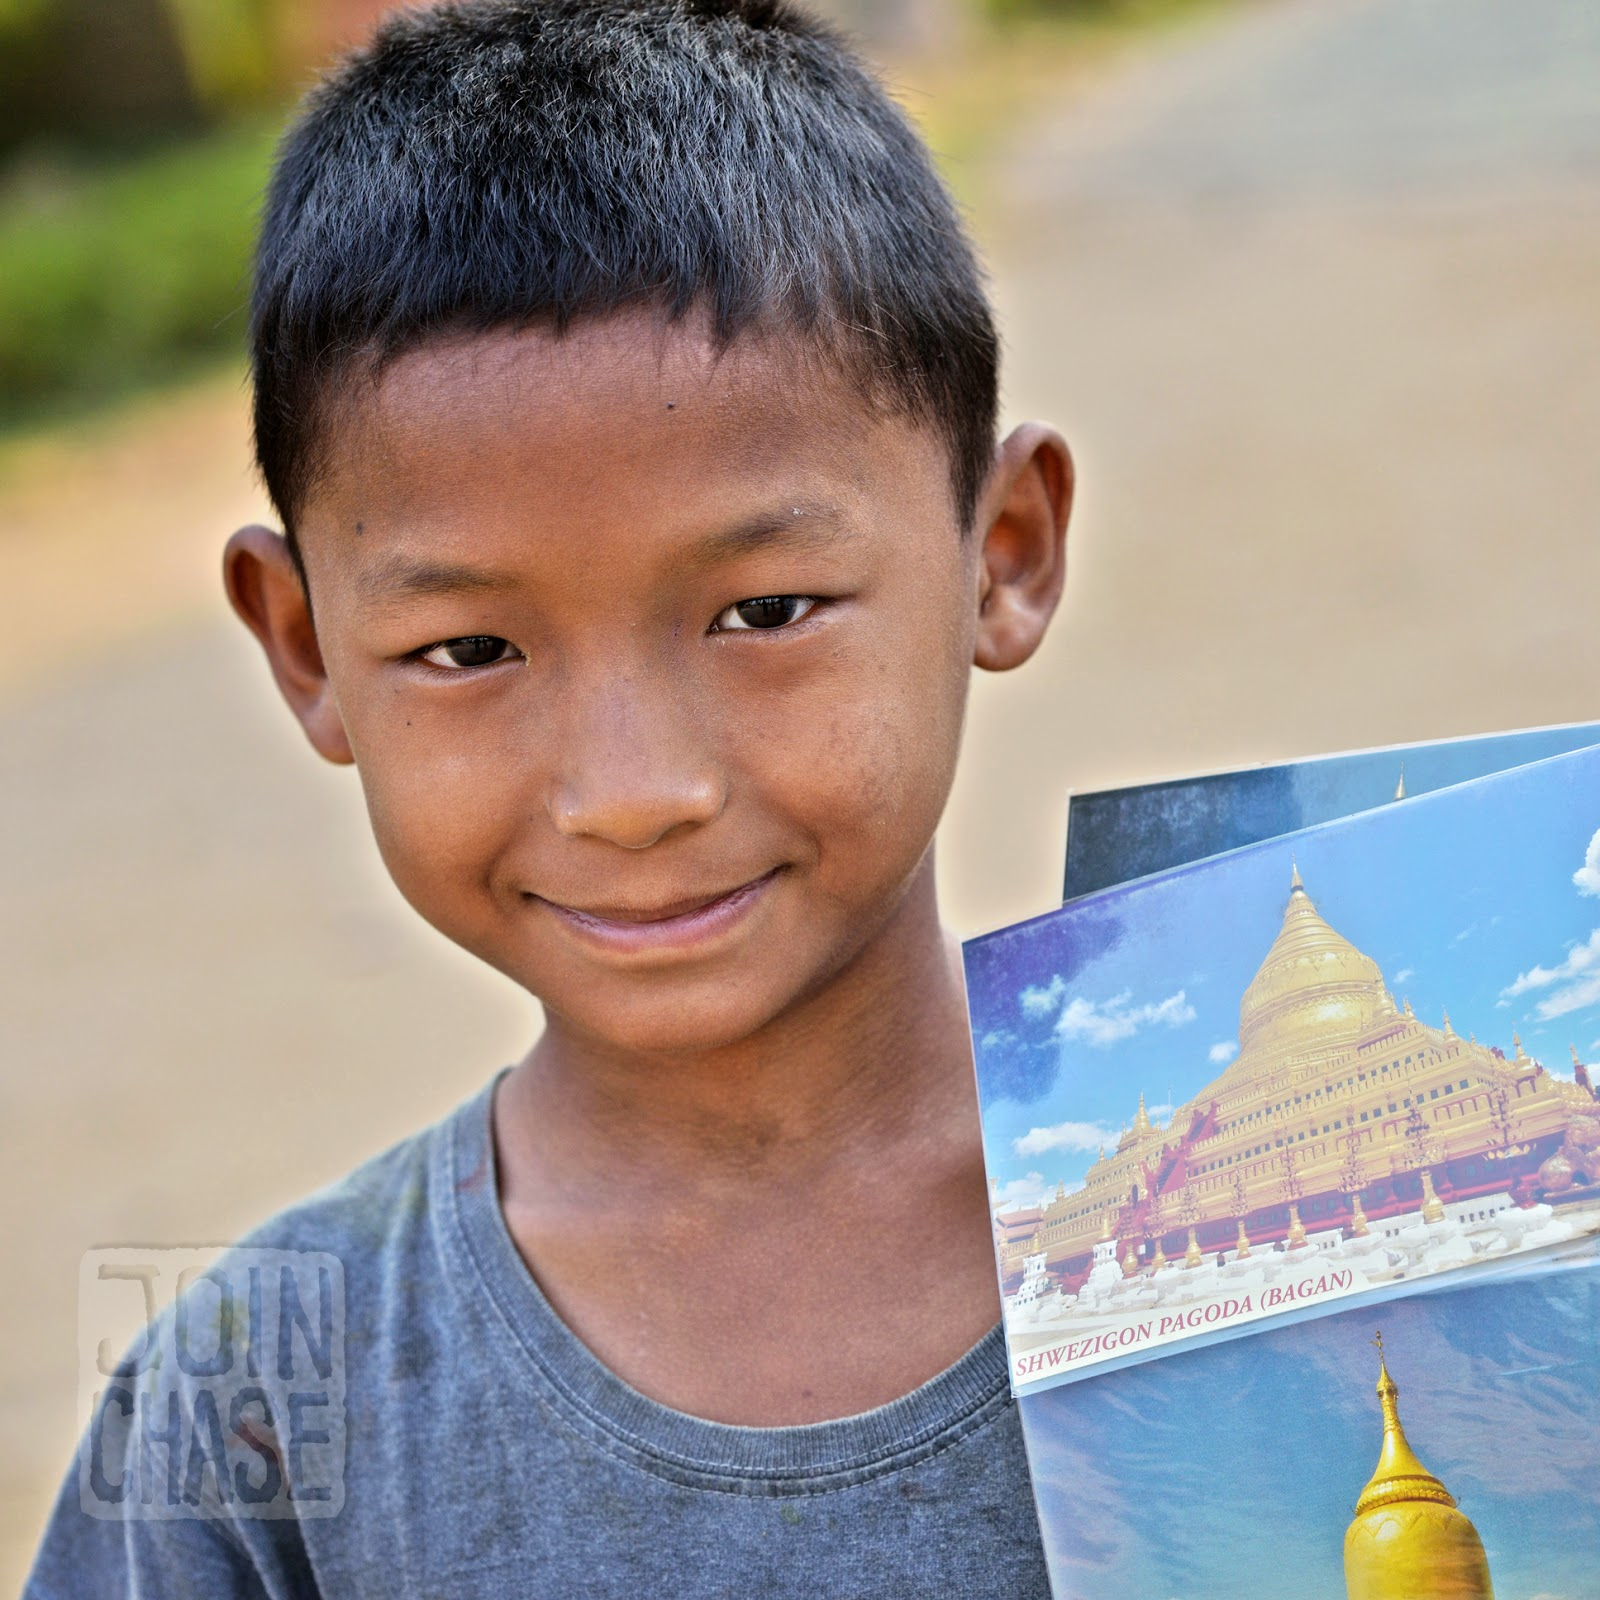 A boy selling postcards in Bagan, Myanmar.